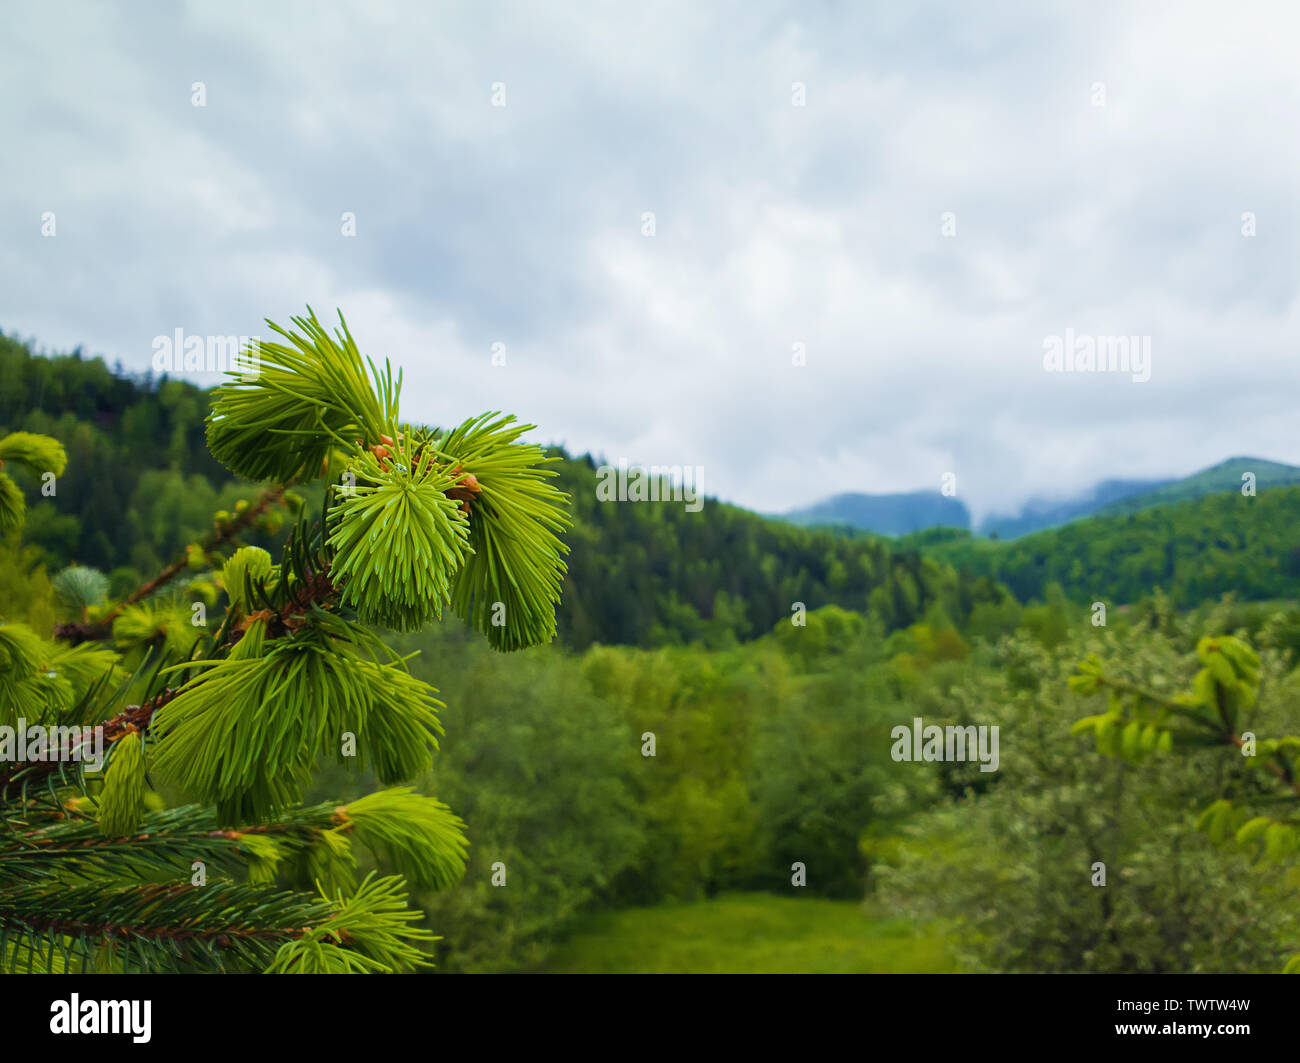 Close up of fir branches with young sprouts buds over the spring mountain background. Coniferous forest on the hills. Fresh green tones landscape. - Stock Image